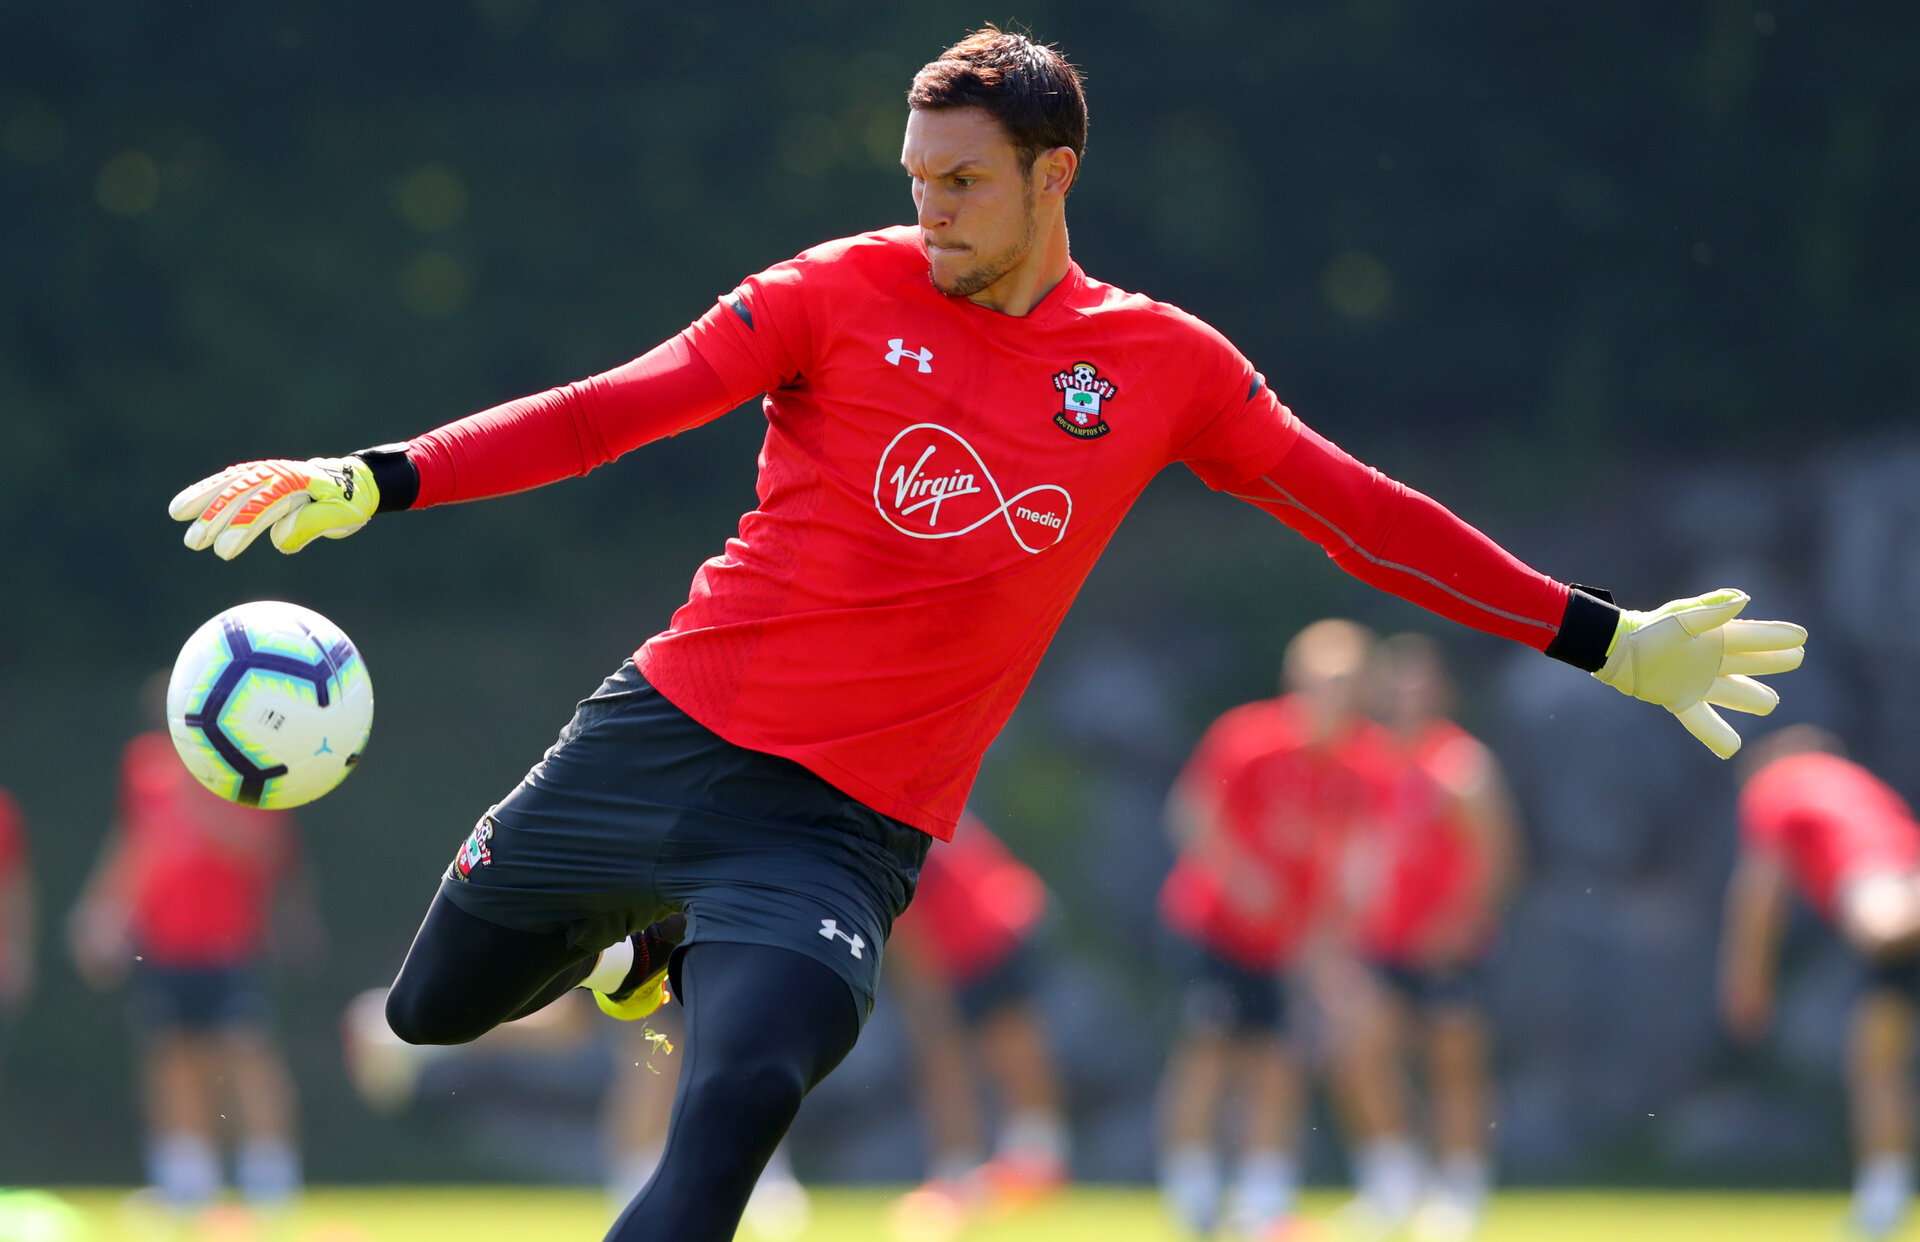 EVIAN-LES-BAINS, FRANCE - JULY 24: Alex McCarthy during day 2 of Southampton FC's pre-season training camp on July 24, 2018 in Evian-les-Bains, France. (Photo by Matt Watson/Southampton FC via Getty Images)